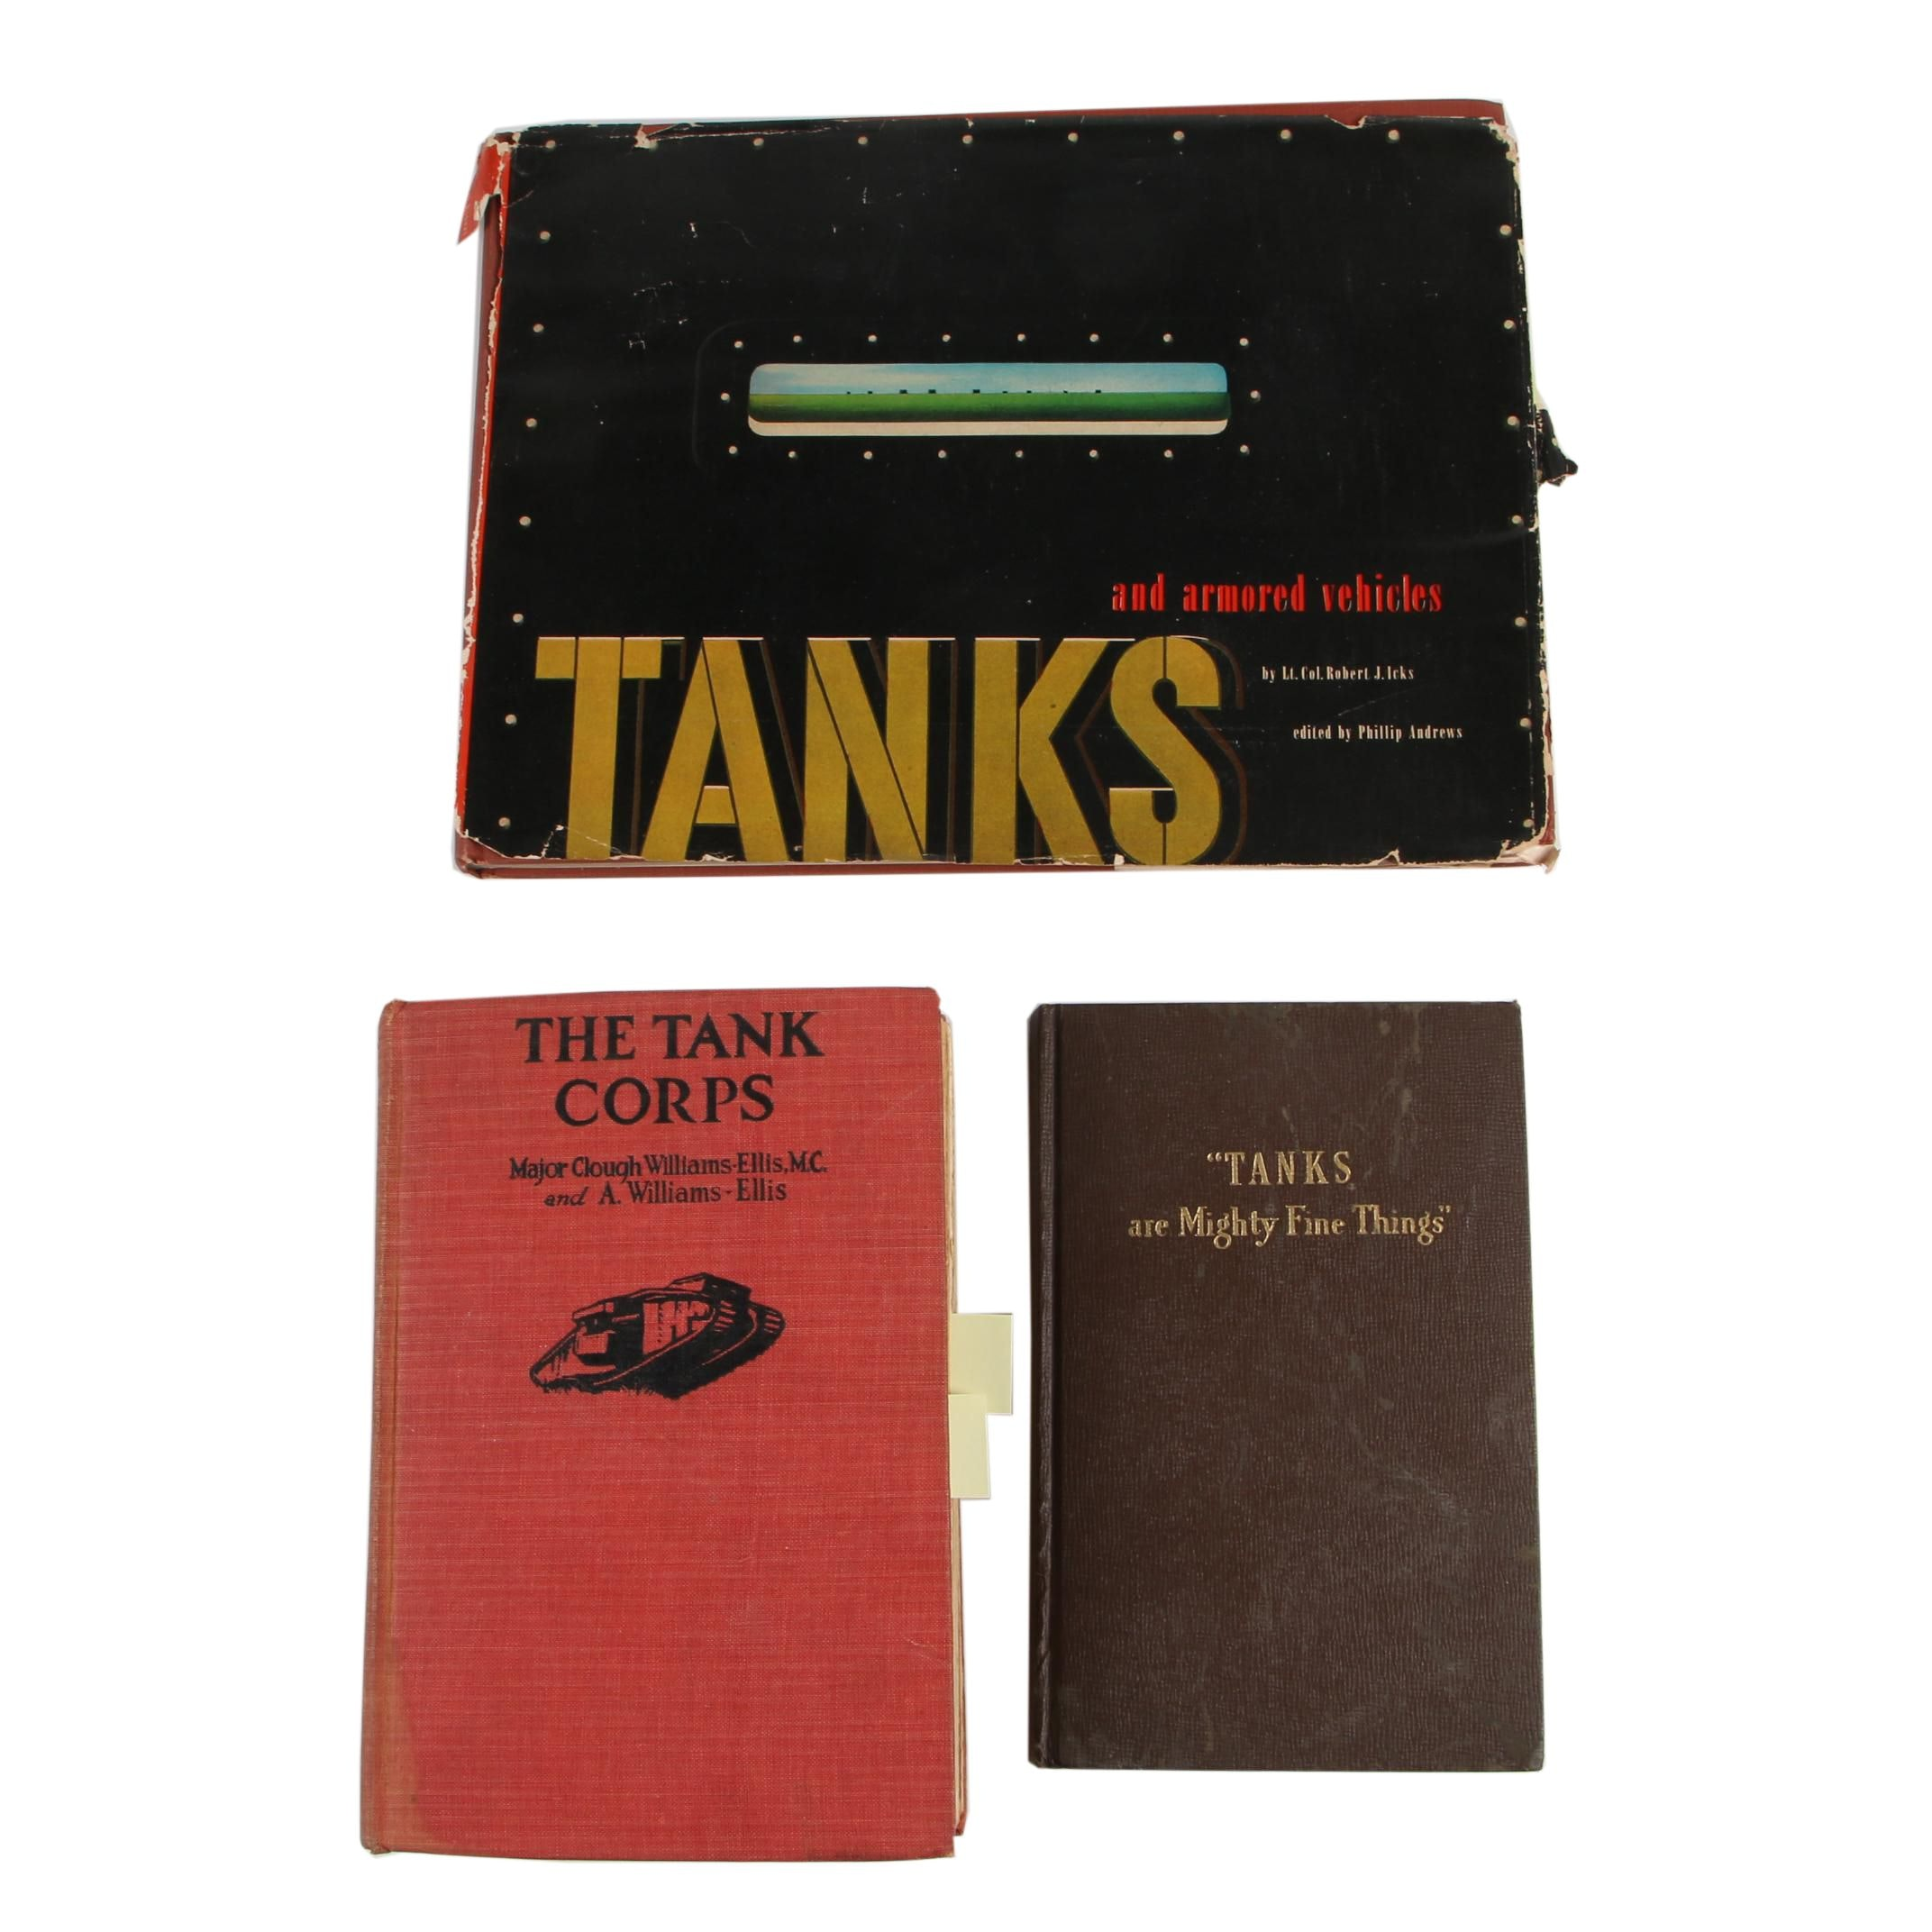 """Books on Military Tanks featuring """"Tanks and Armored Vehicles"""" by Robert J. Icks"""